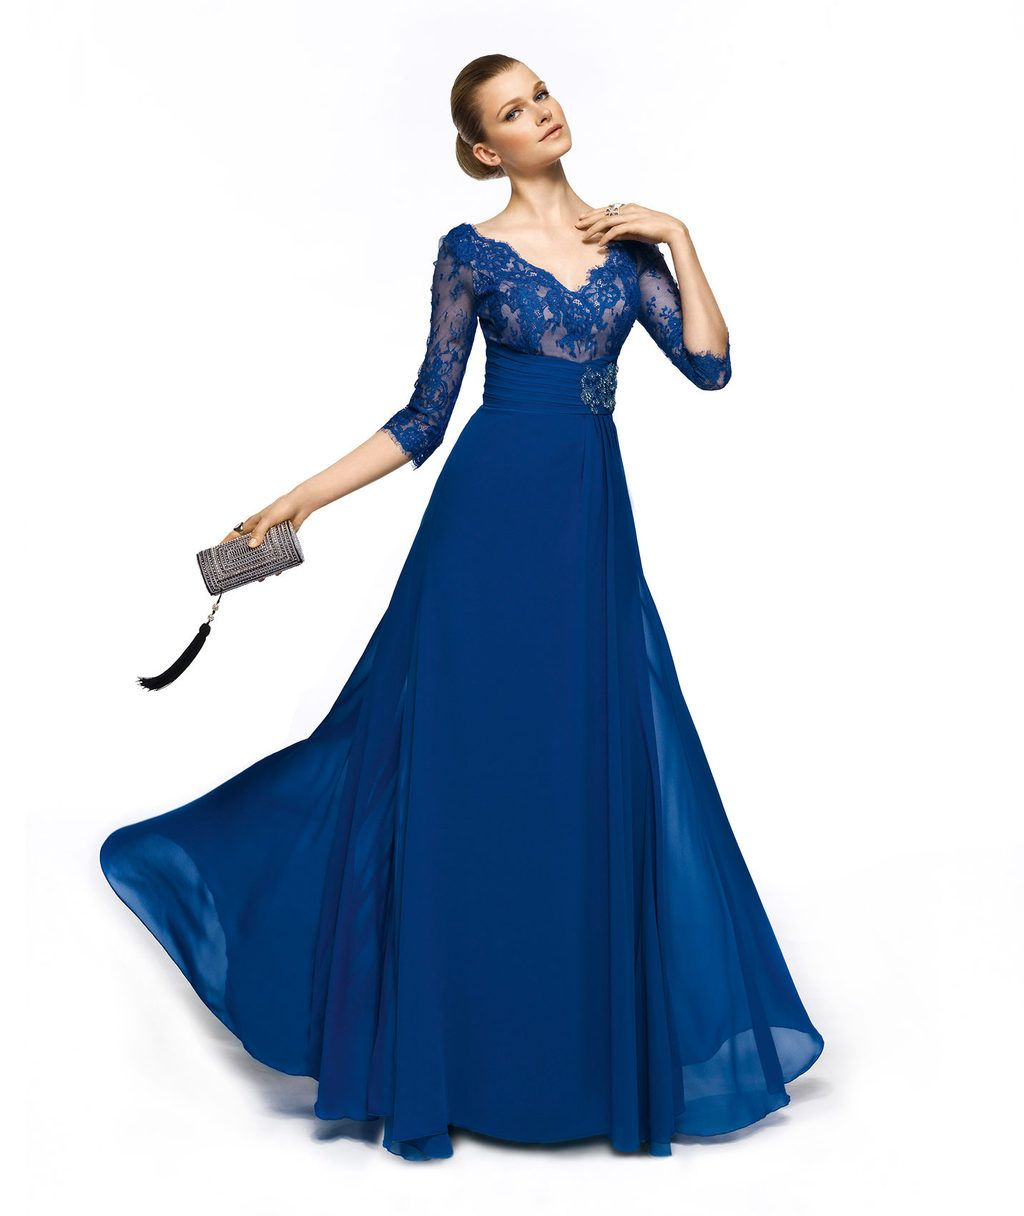 Blue Evening Gown | Dress Lesson | gowns and dresses | Pinterest ...